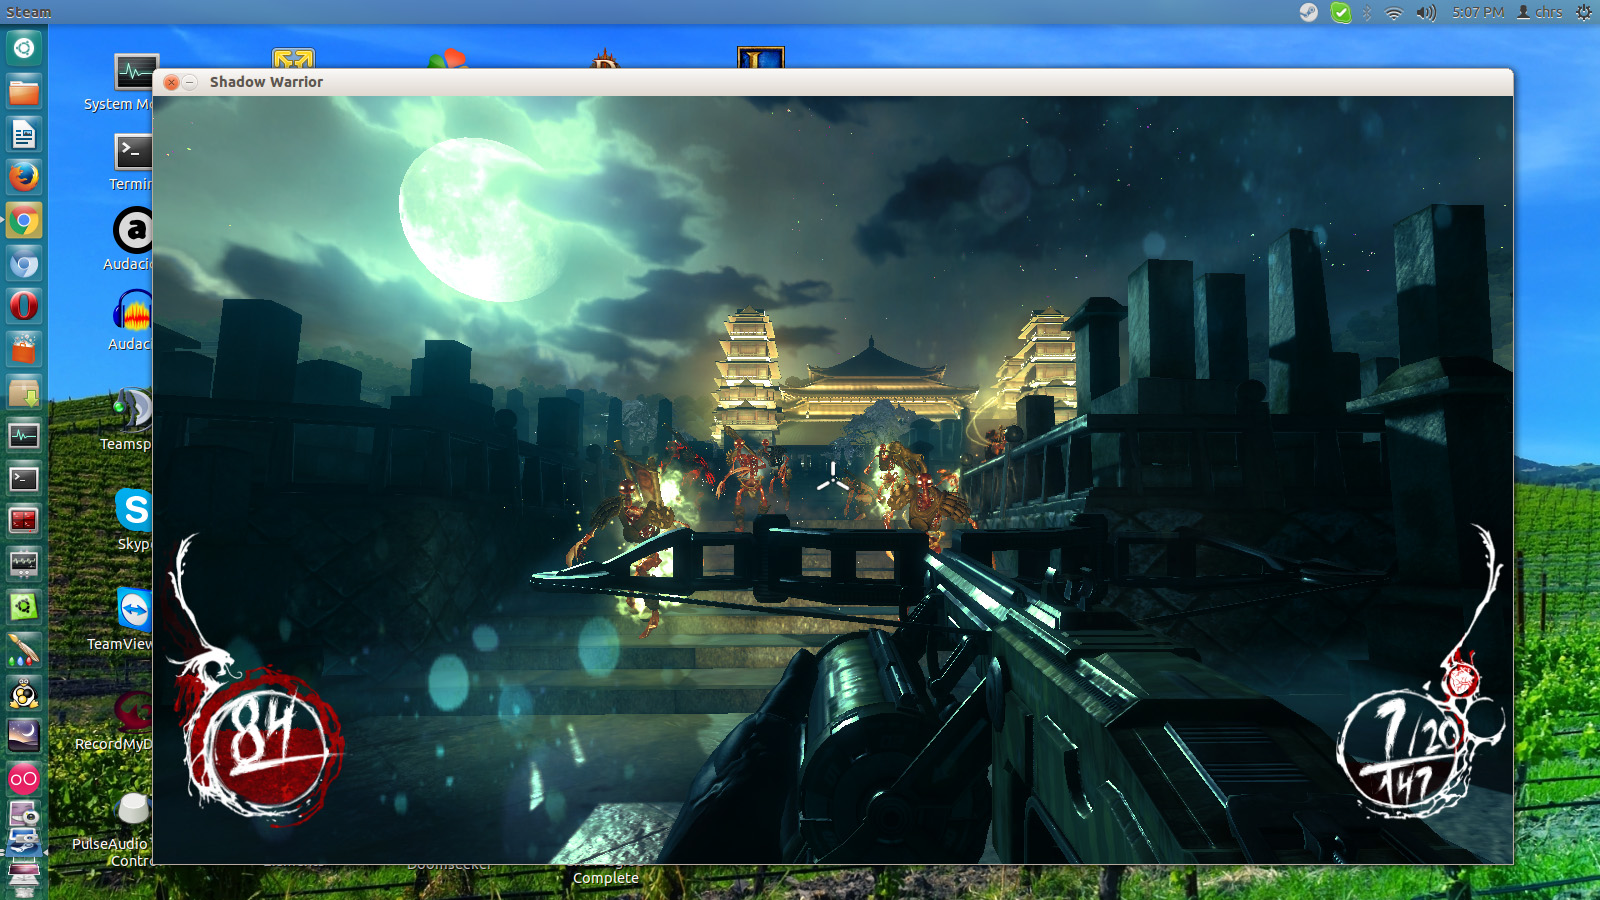 shadow_warrior_linux_2.jpg